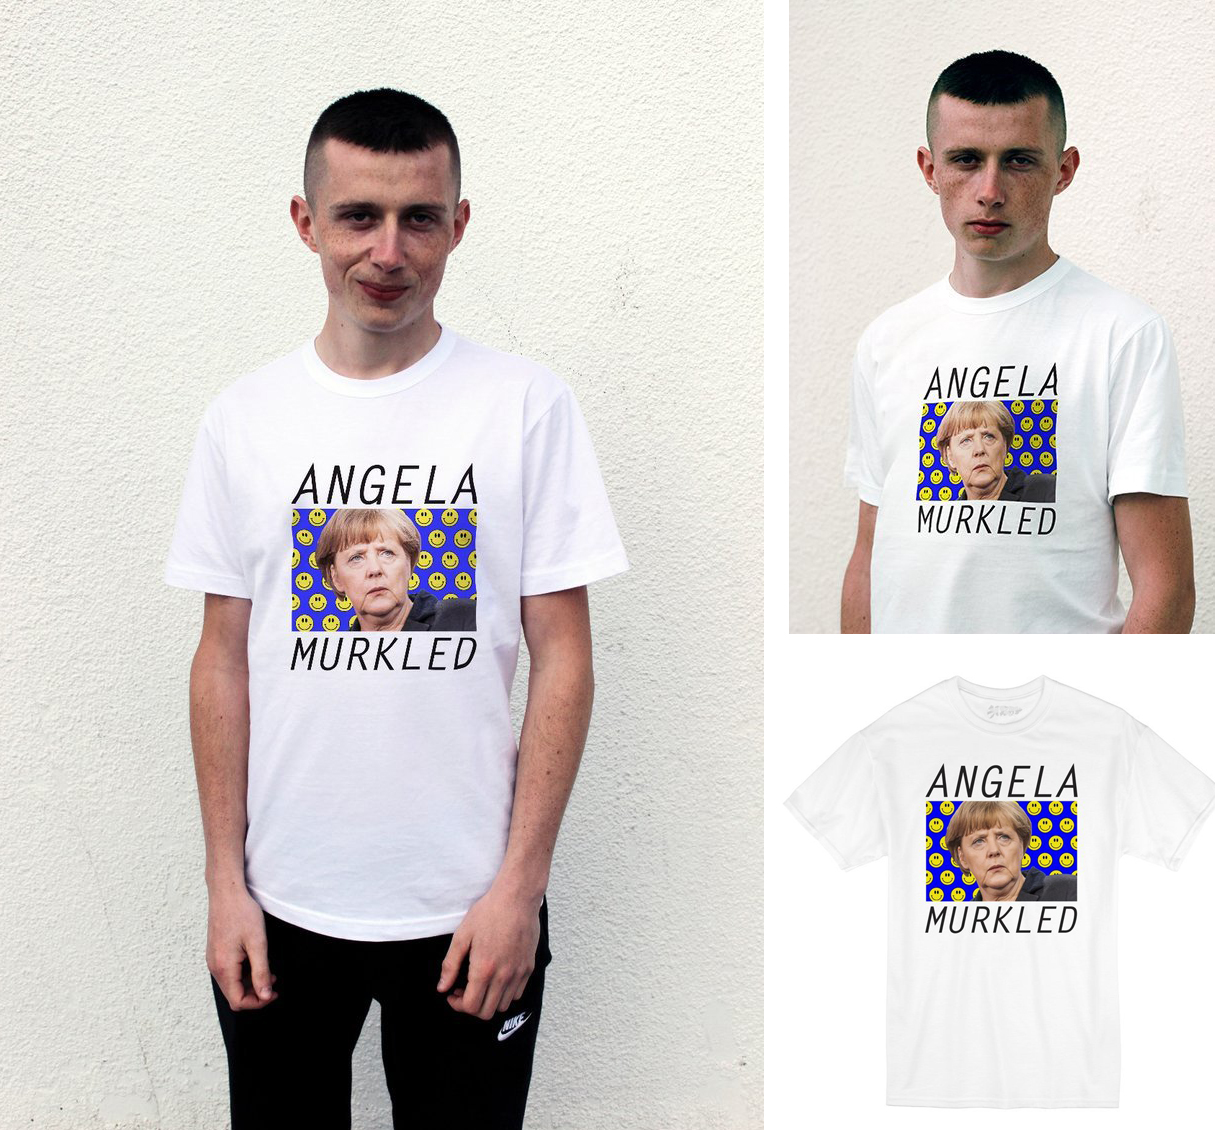 ANOTHER T-SHIRT SENT TO THE ARCHIVES. ANGELA MURKLED HAS NOW SOLD OUT WITH NO PLANS TO RESTOCK IT.